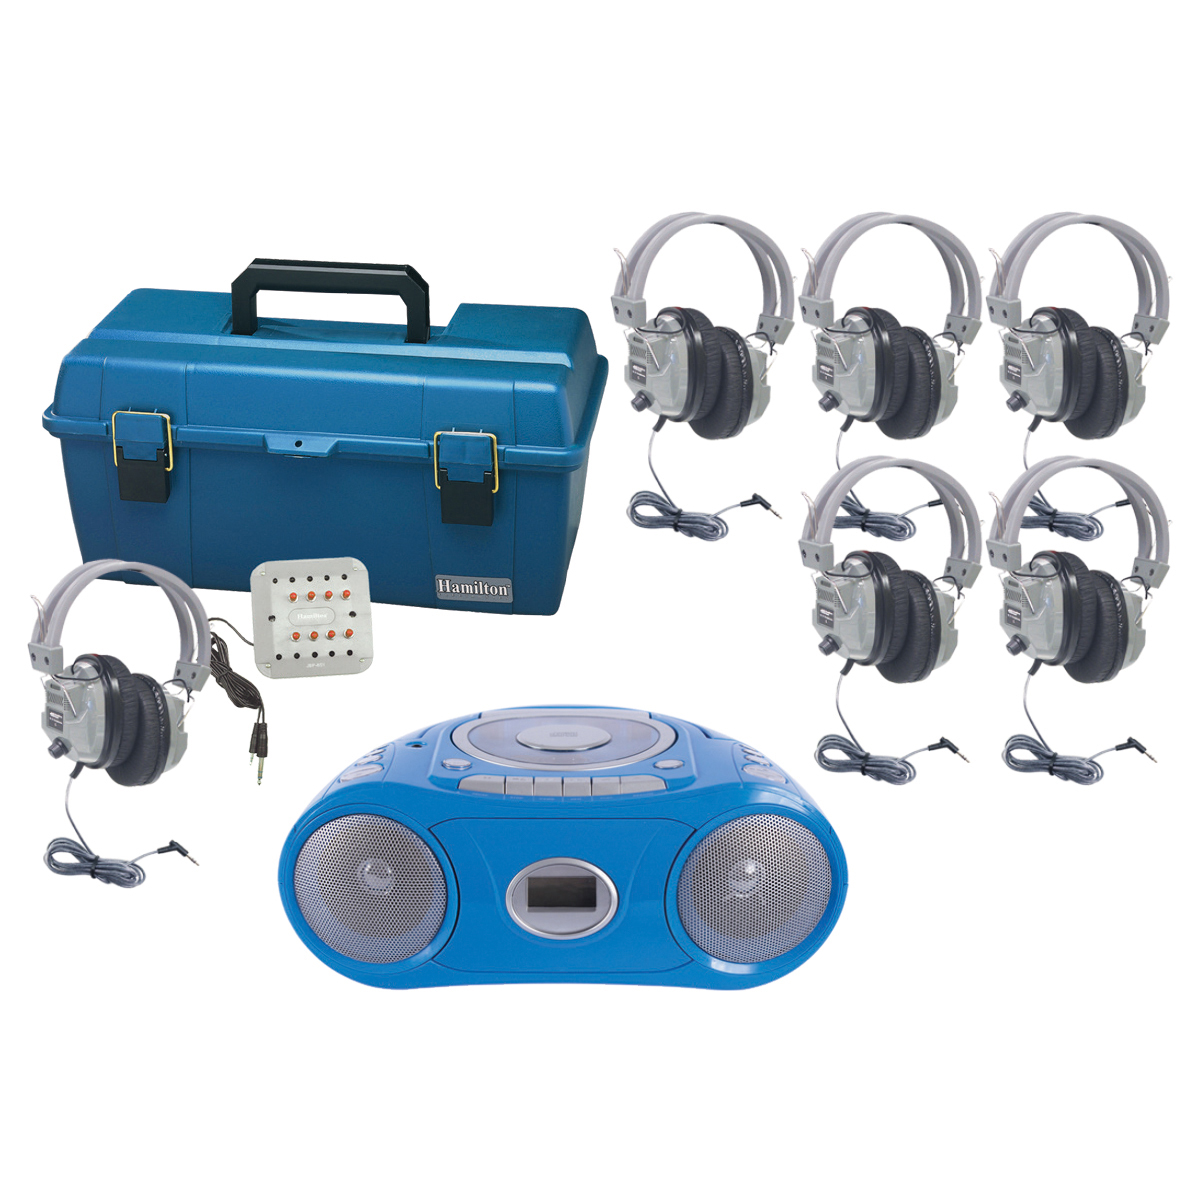 Hamilton™ Deluxe 6-Station Listening Centre with Bluetooth®/CD/Cassette/FM